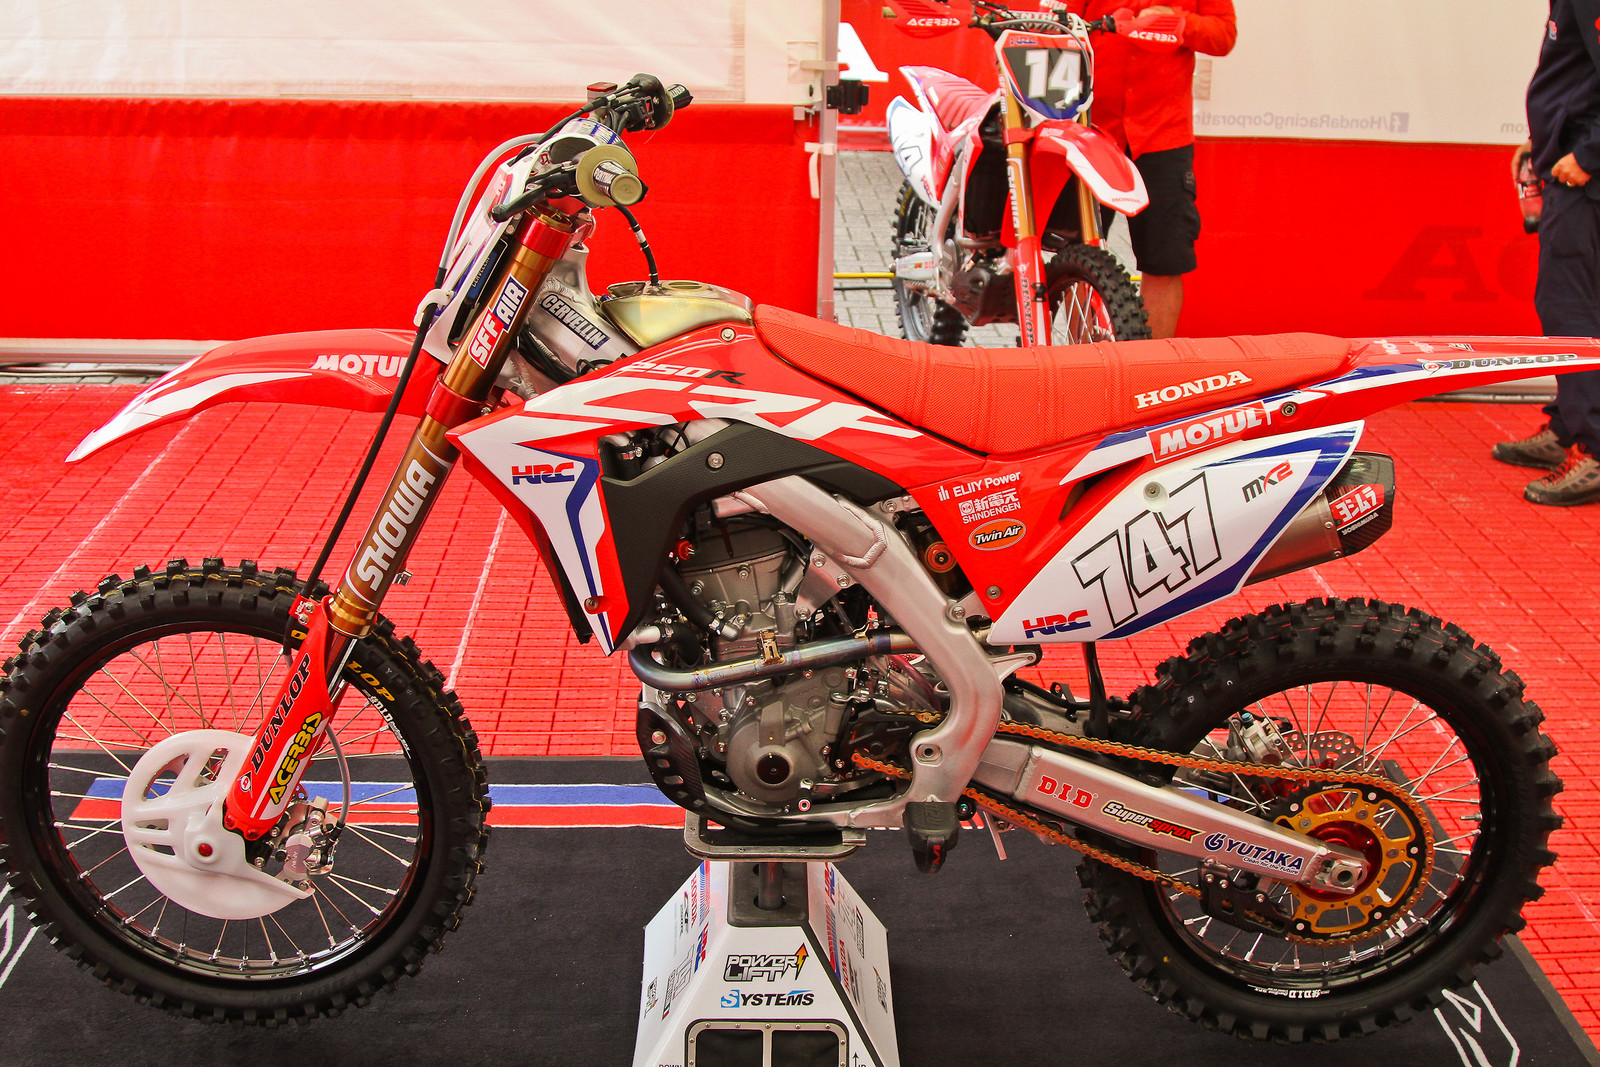 2018 Honda CRF250RW - Left Side - Michele Cervellin - ayearinmx - Motocross Pictures - Vital MX